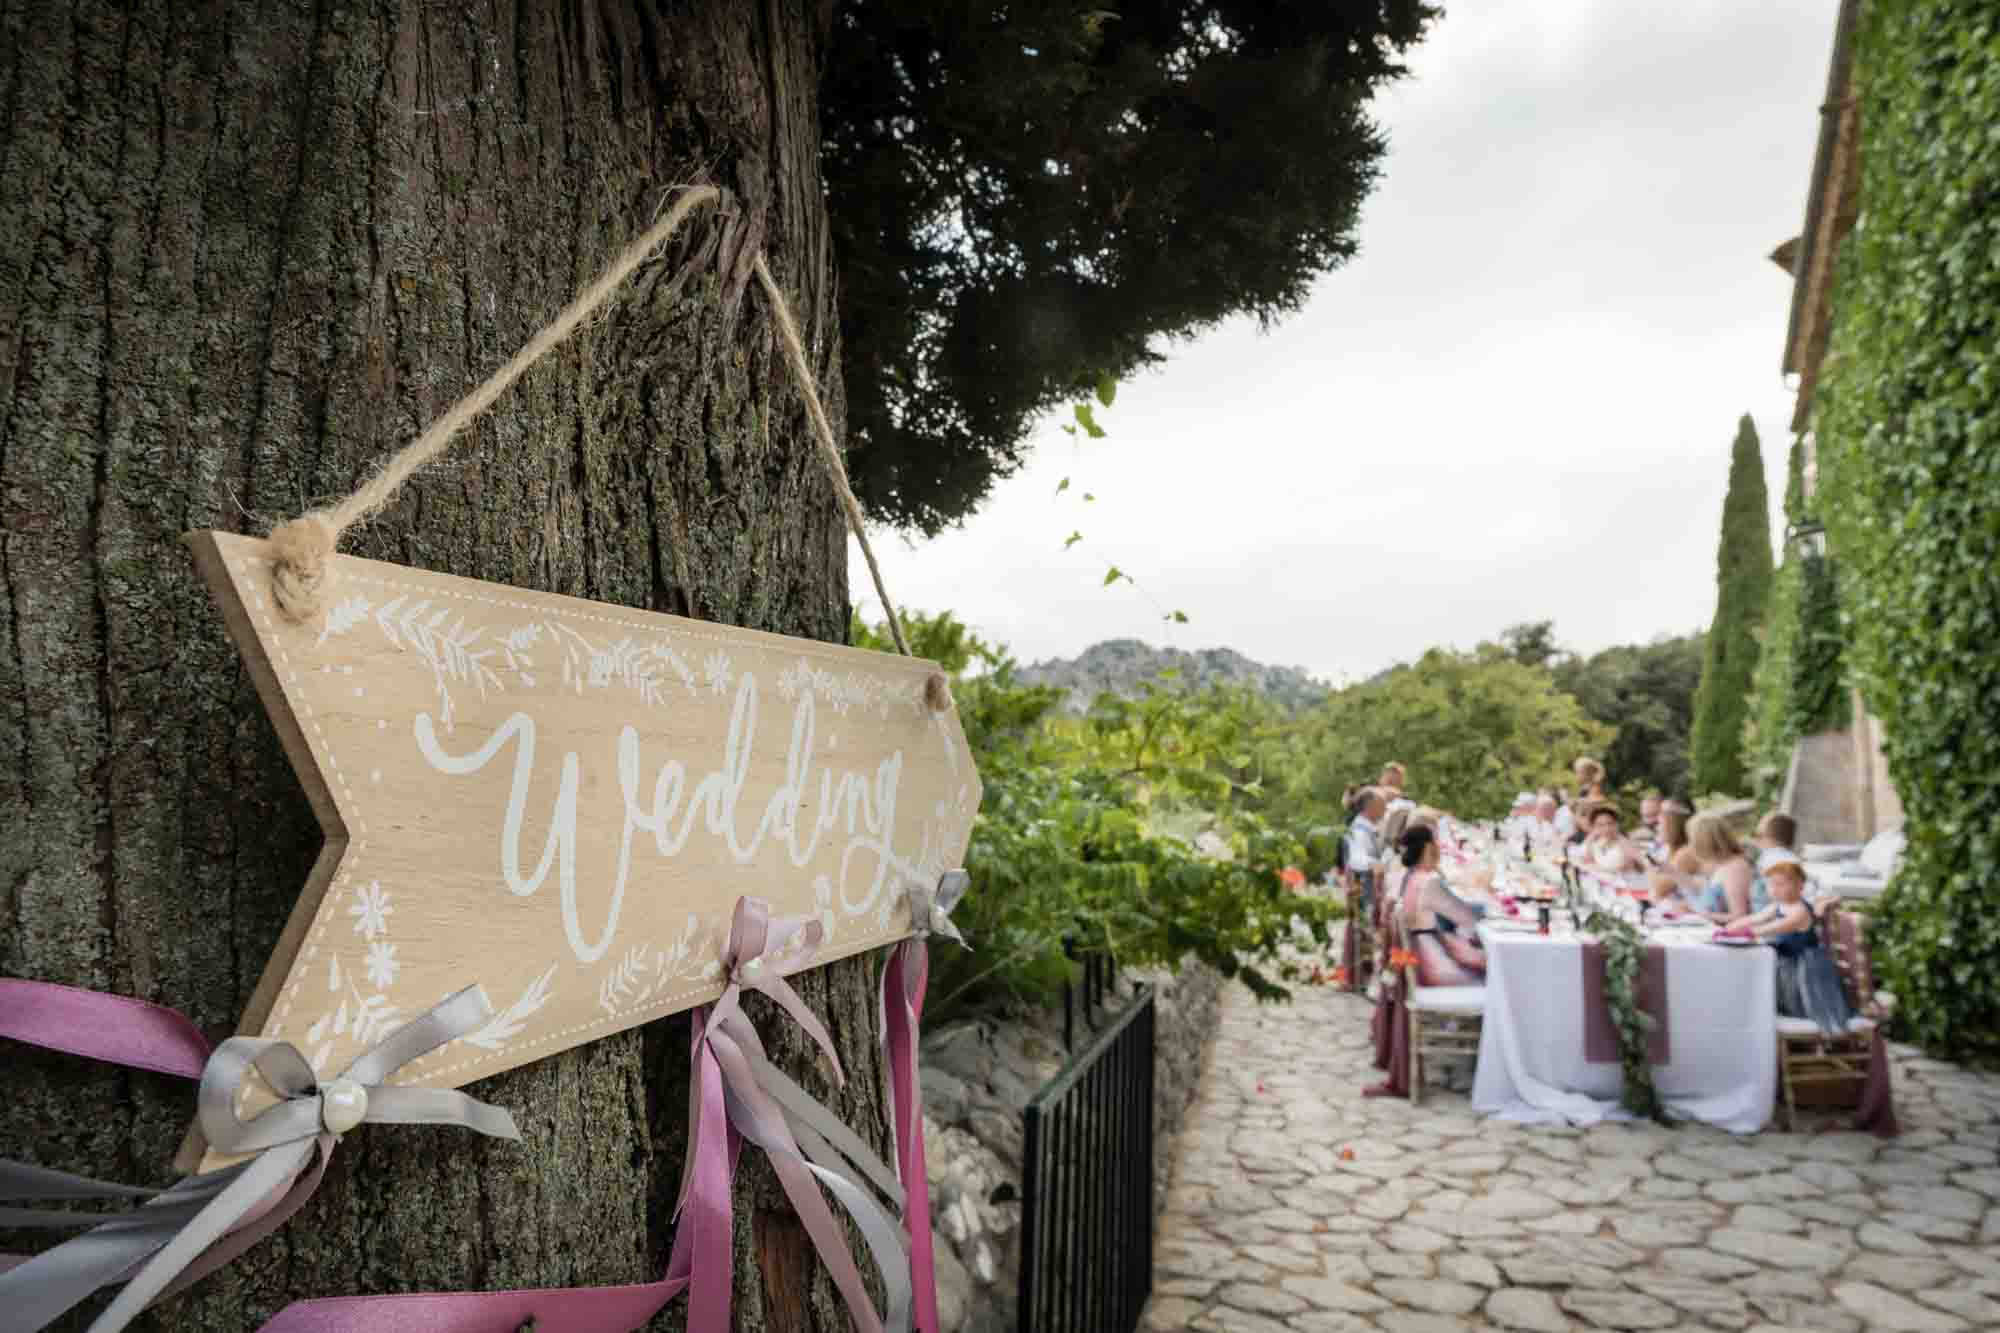 Guests enjoy a relaxed meal at an outdoor finca wedding